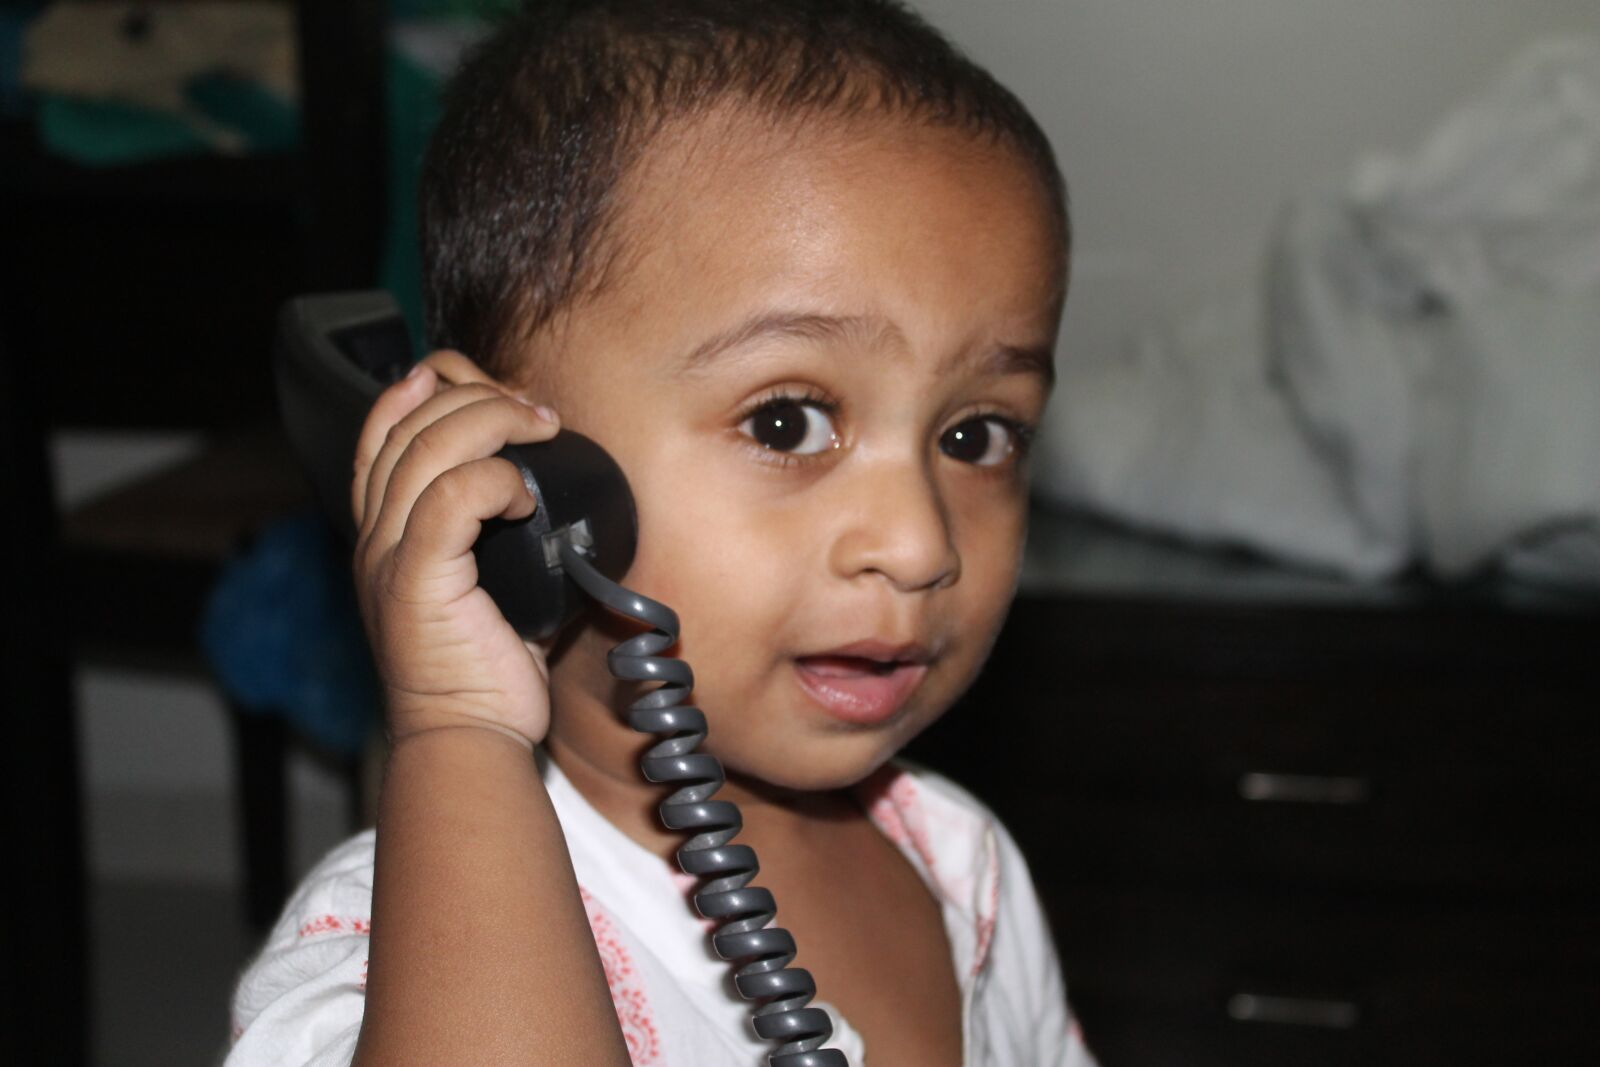 """Canon EOS 1100D (EOS Rebel T3 / EOS Kiss X50) sample photo. """"Child, telephone, reality"""" photography"""